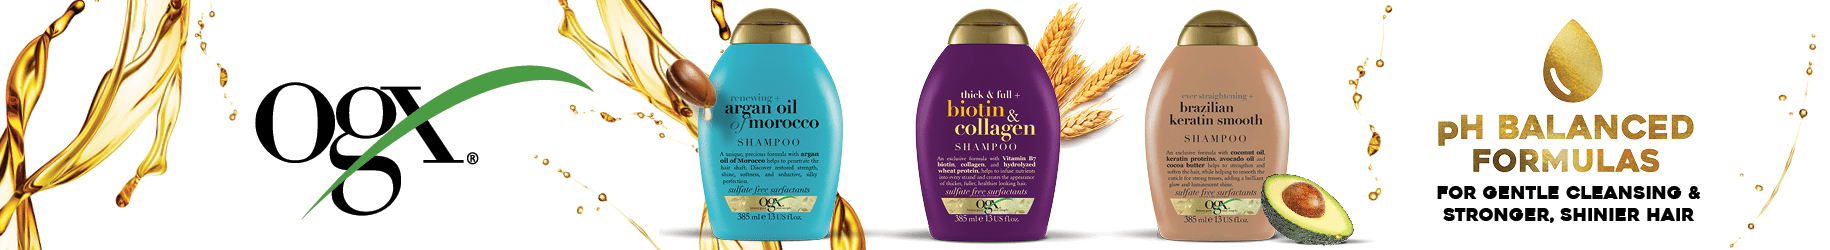 OGX Haircare - pH balanced formulas for gentle cleansing and stronger, shinier hair